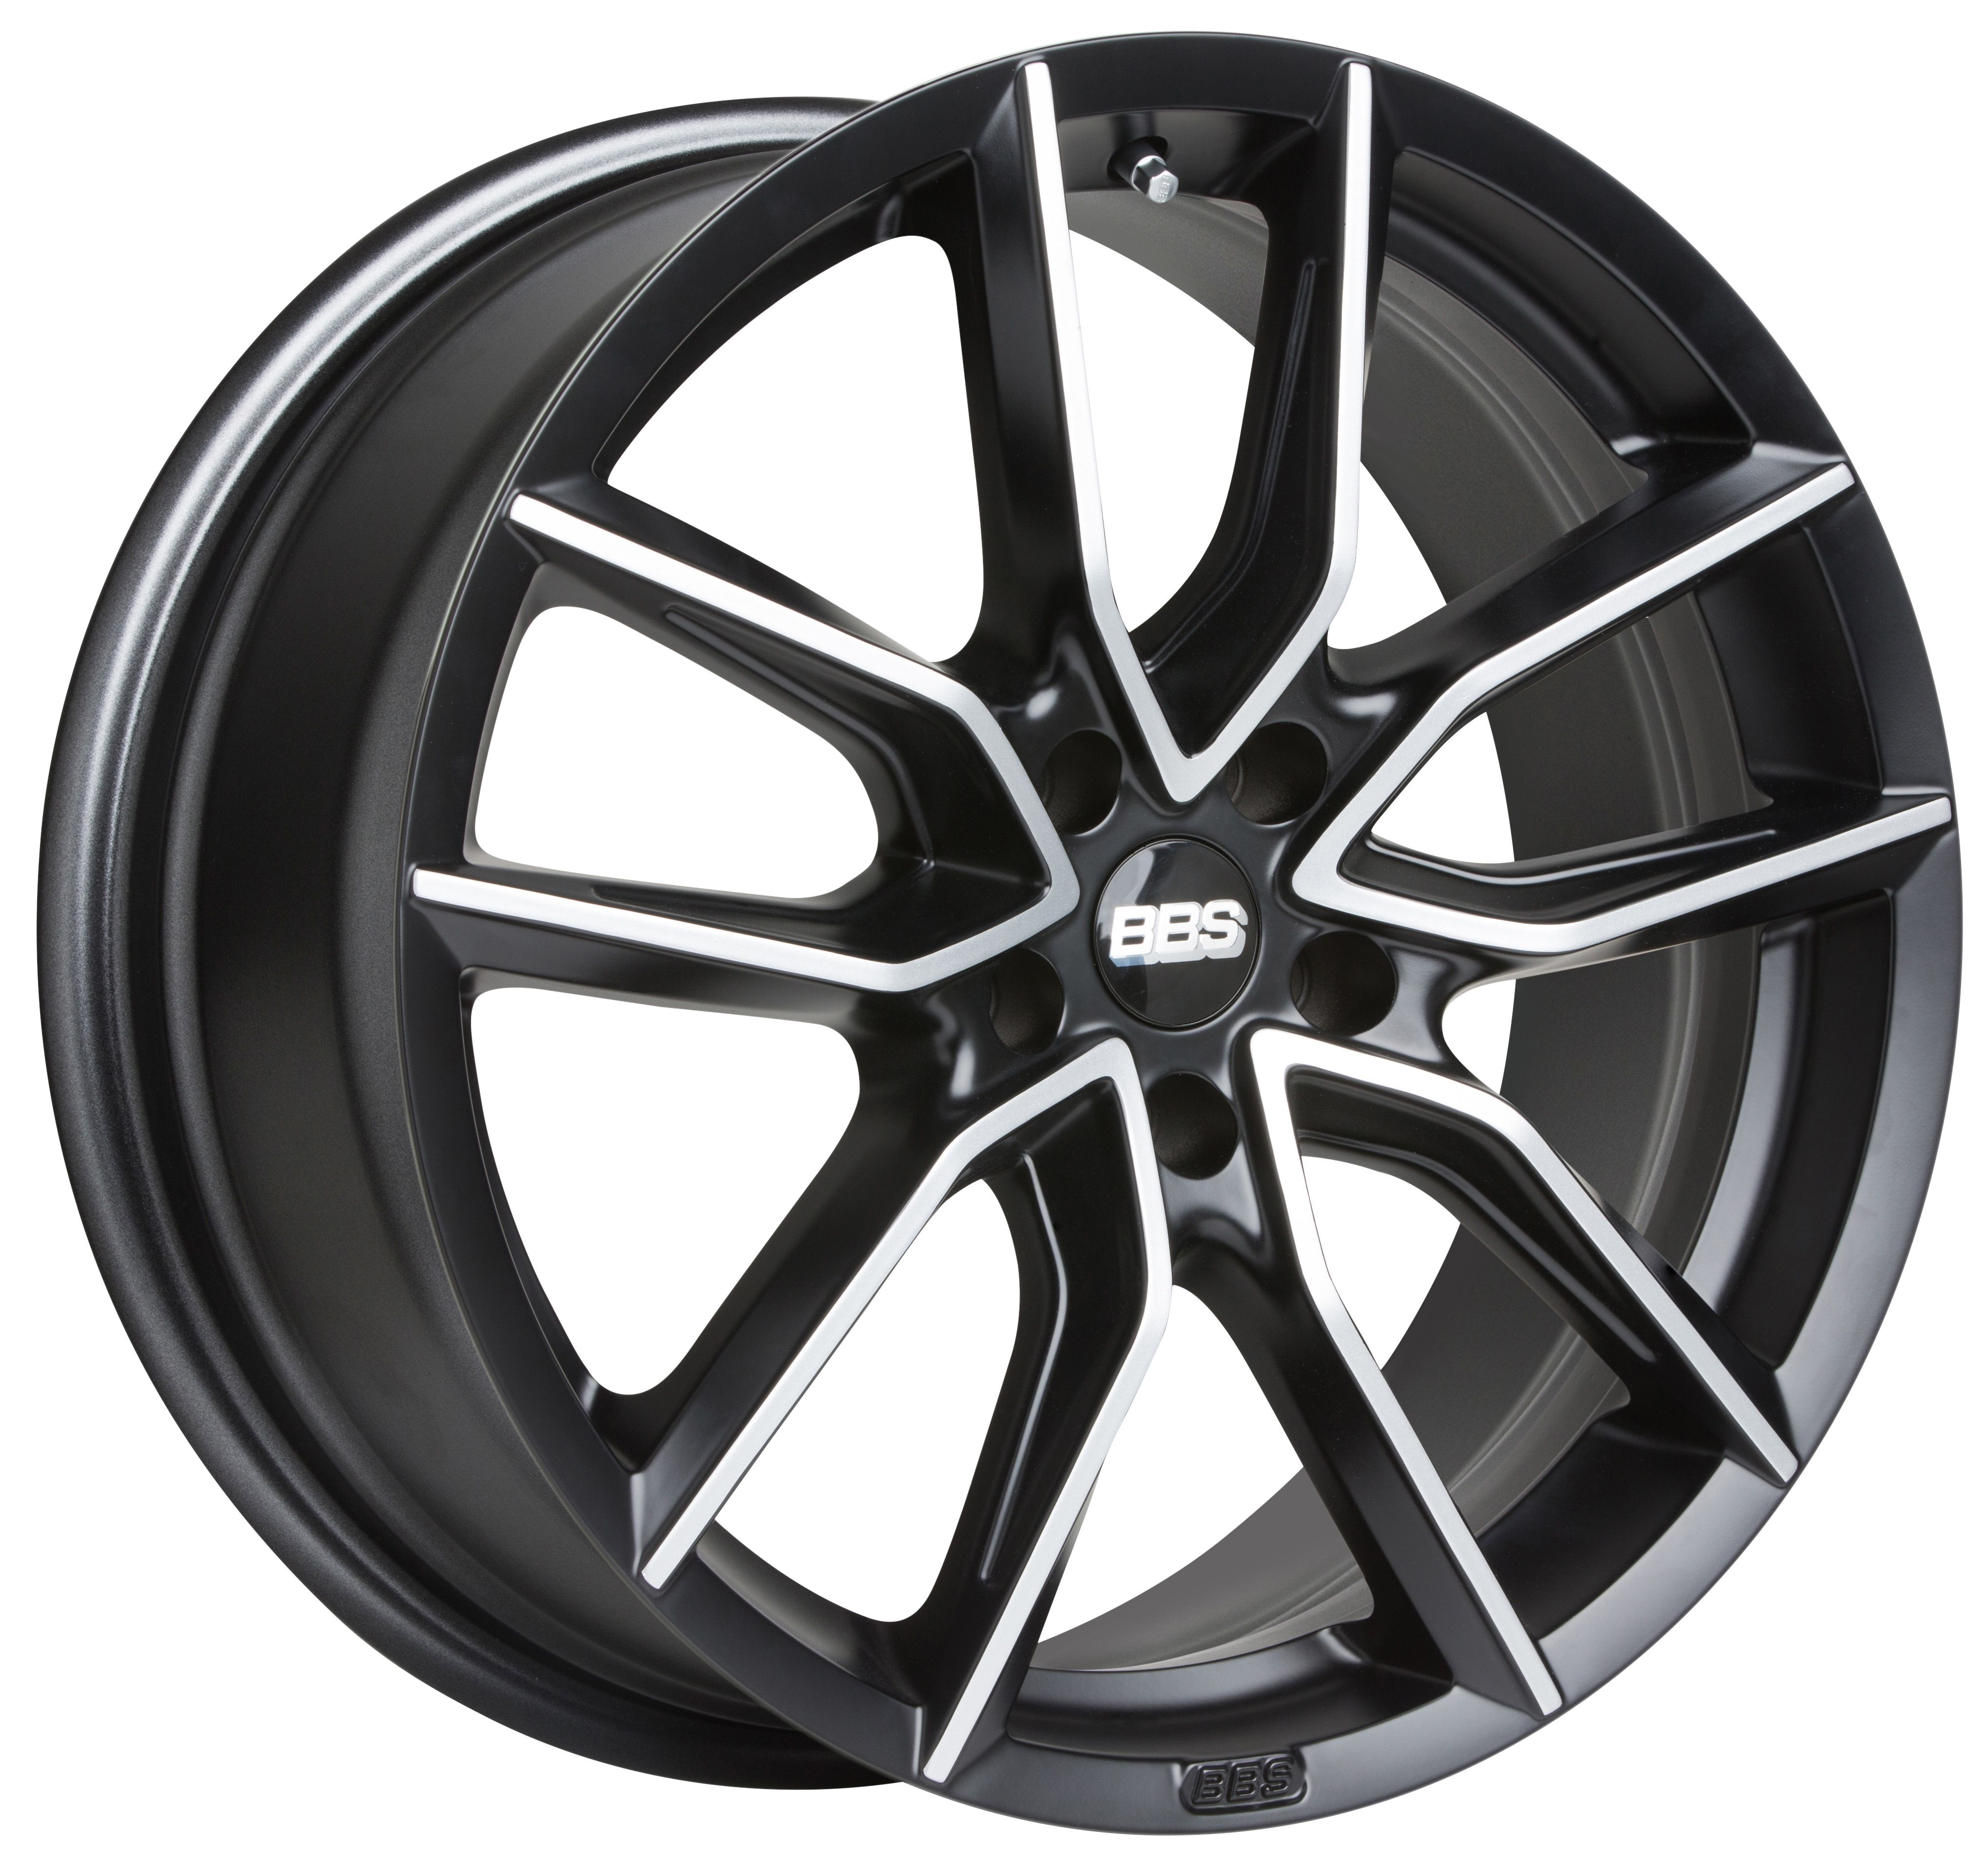 BBS XA0303 8.5x20 5x120 ET33 82 Black Diamond Cut